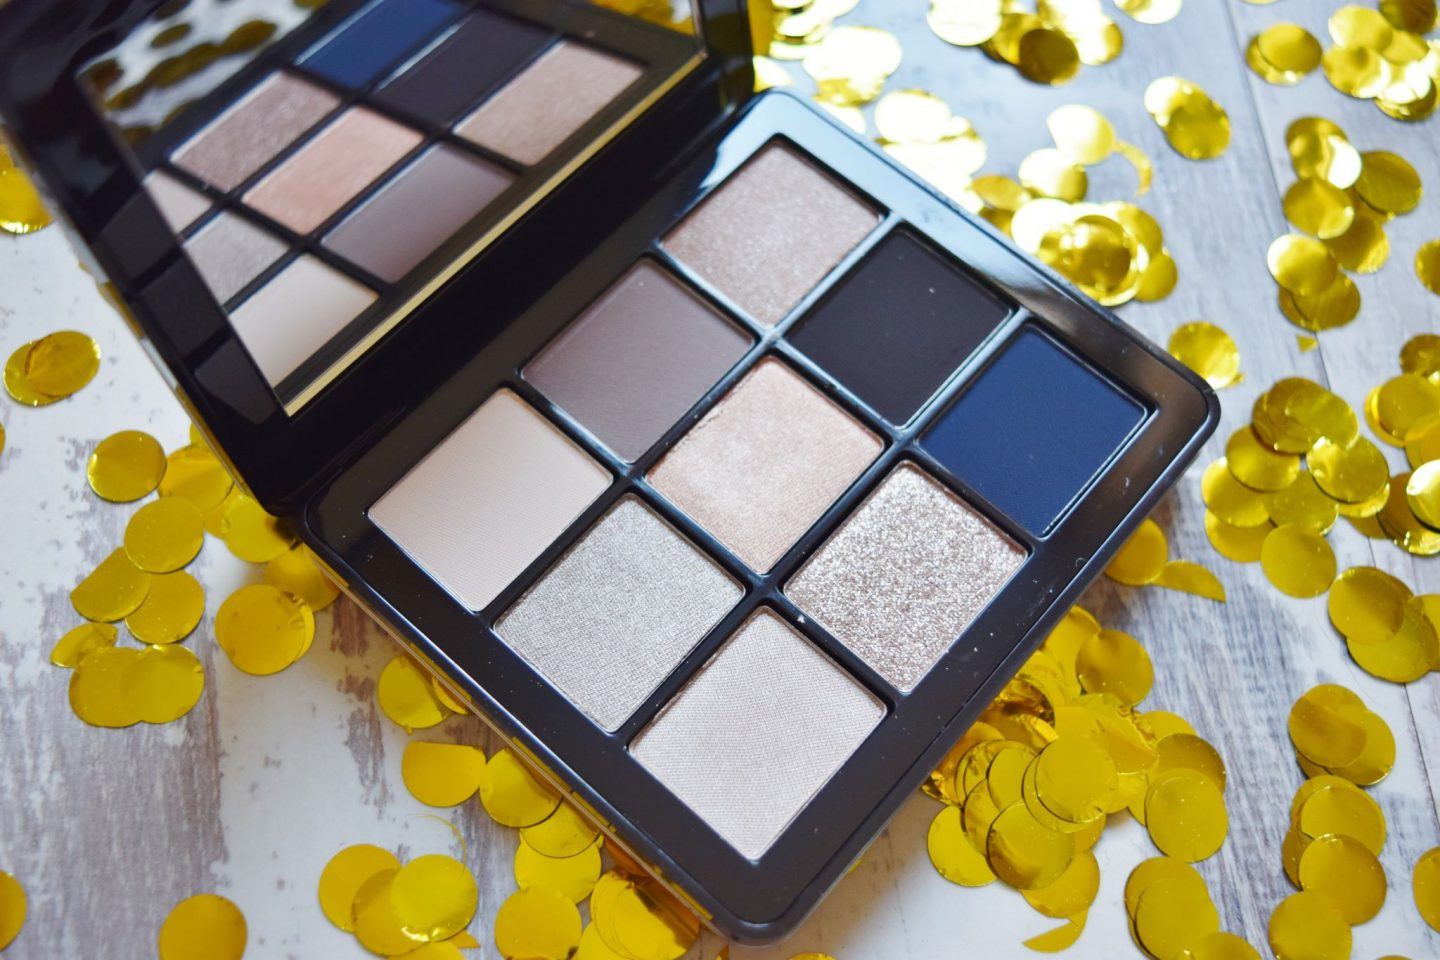 Bobbi Brown Dreaming of Capri Nudes Eyeshadow Palette